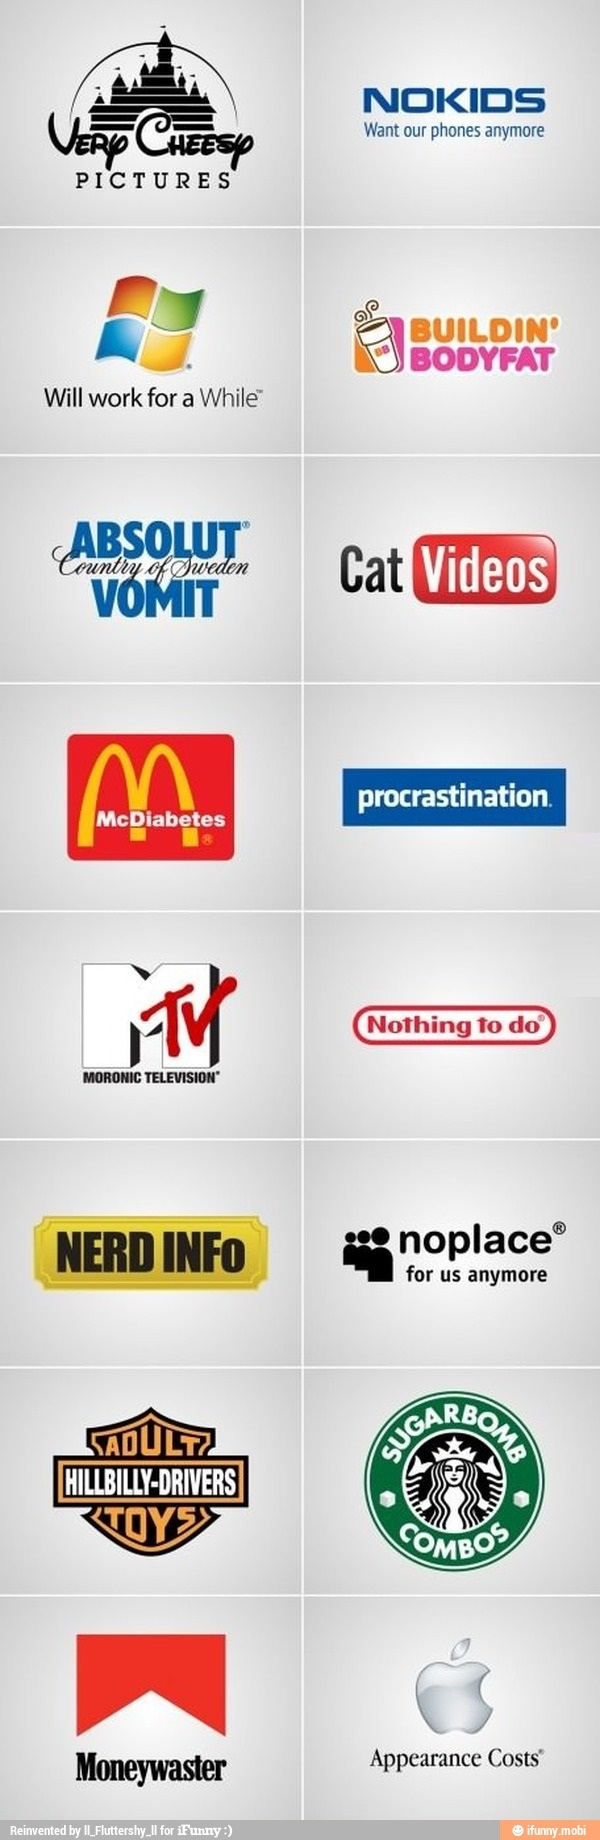 funny-picture-logos-true-story